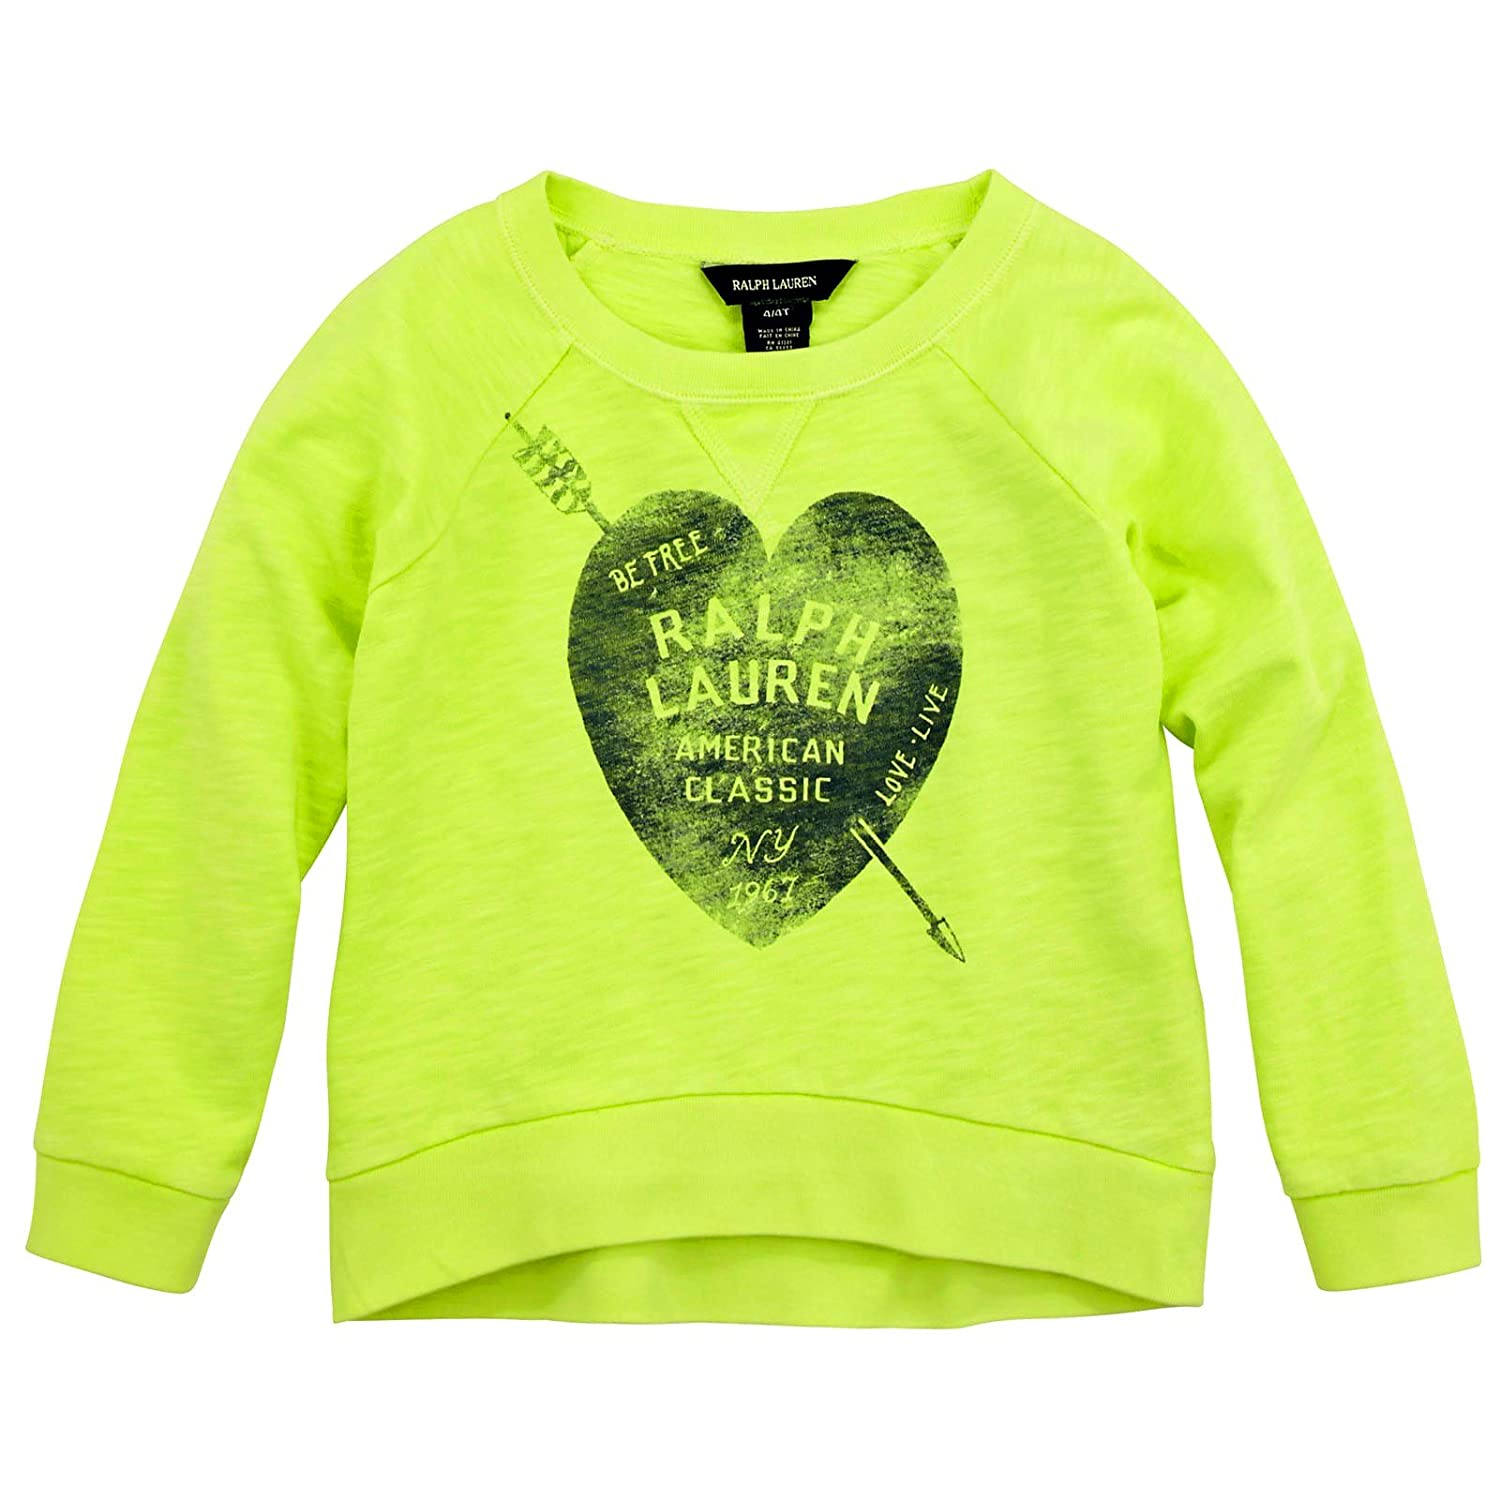 Ralph Lauren Girls Cotton Neon Sweatshirt Pullover Top ralph lauren girls cotton neon sweatshirt pullover top